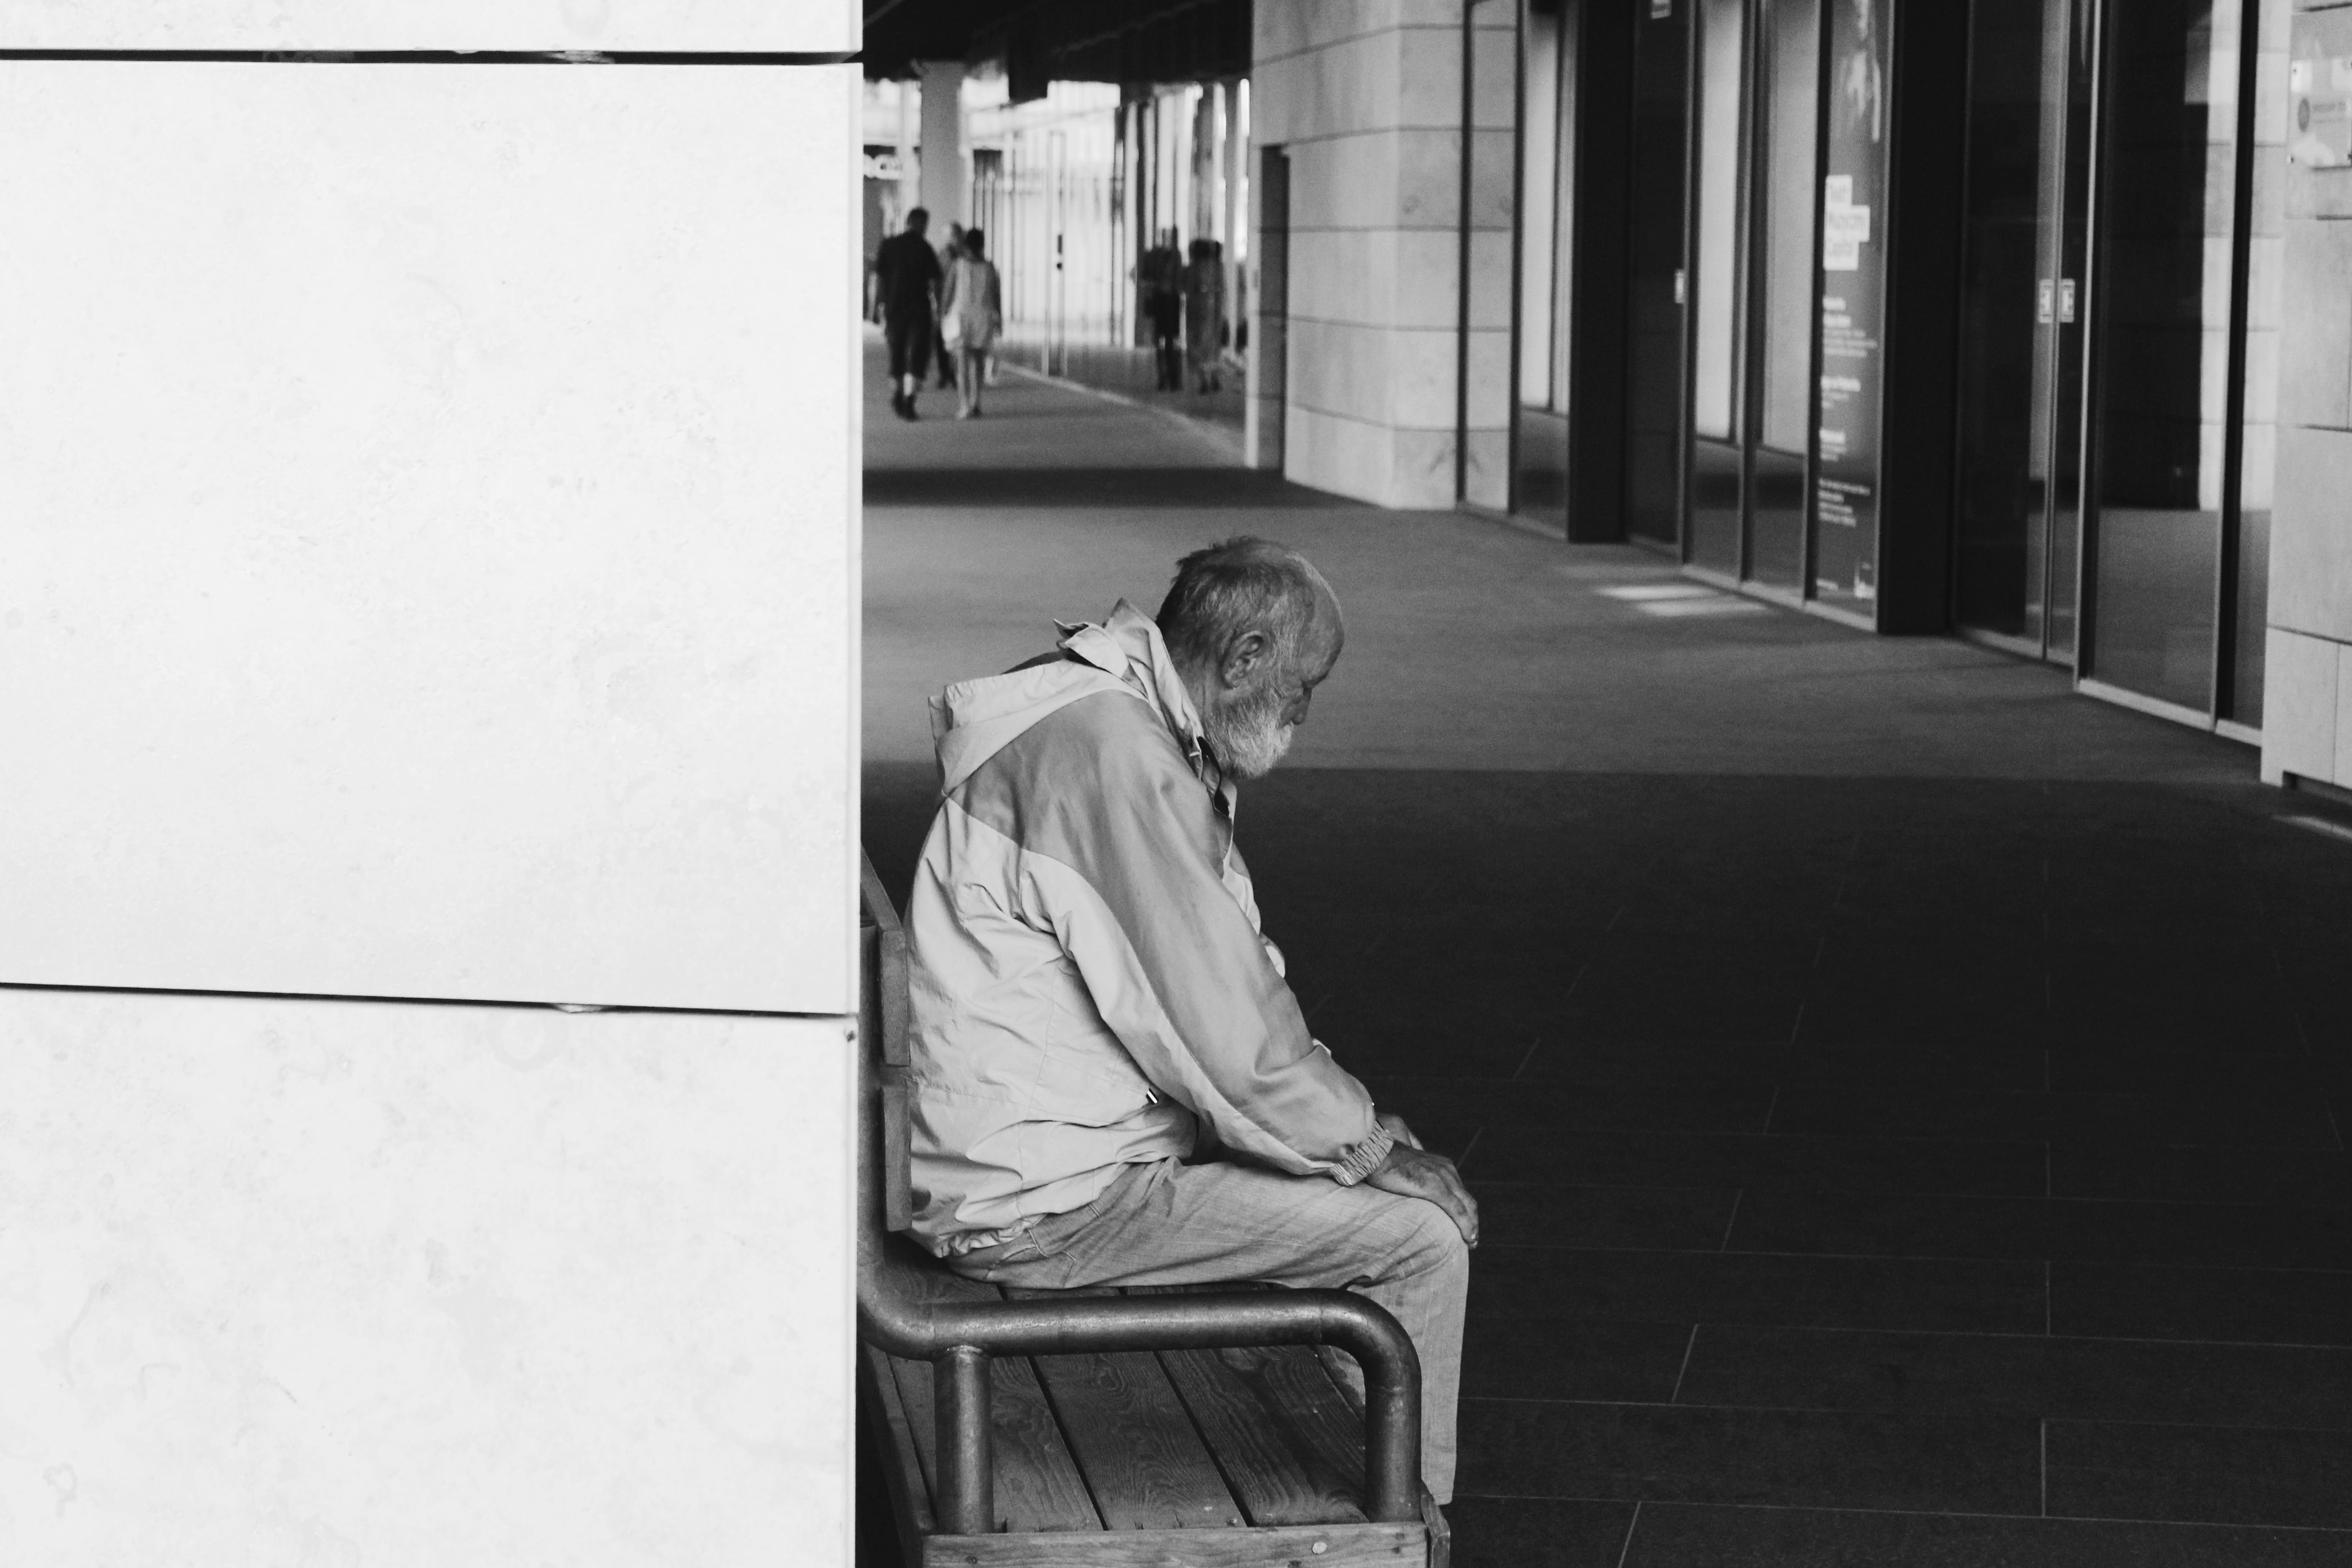 Grayscale Photography of Man Sitting on Chair